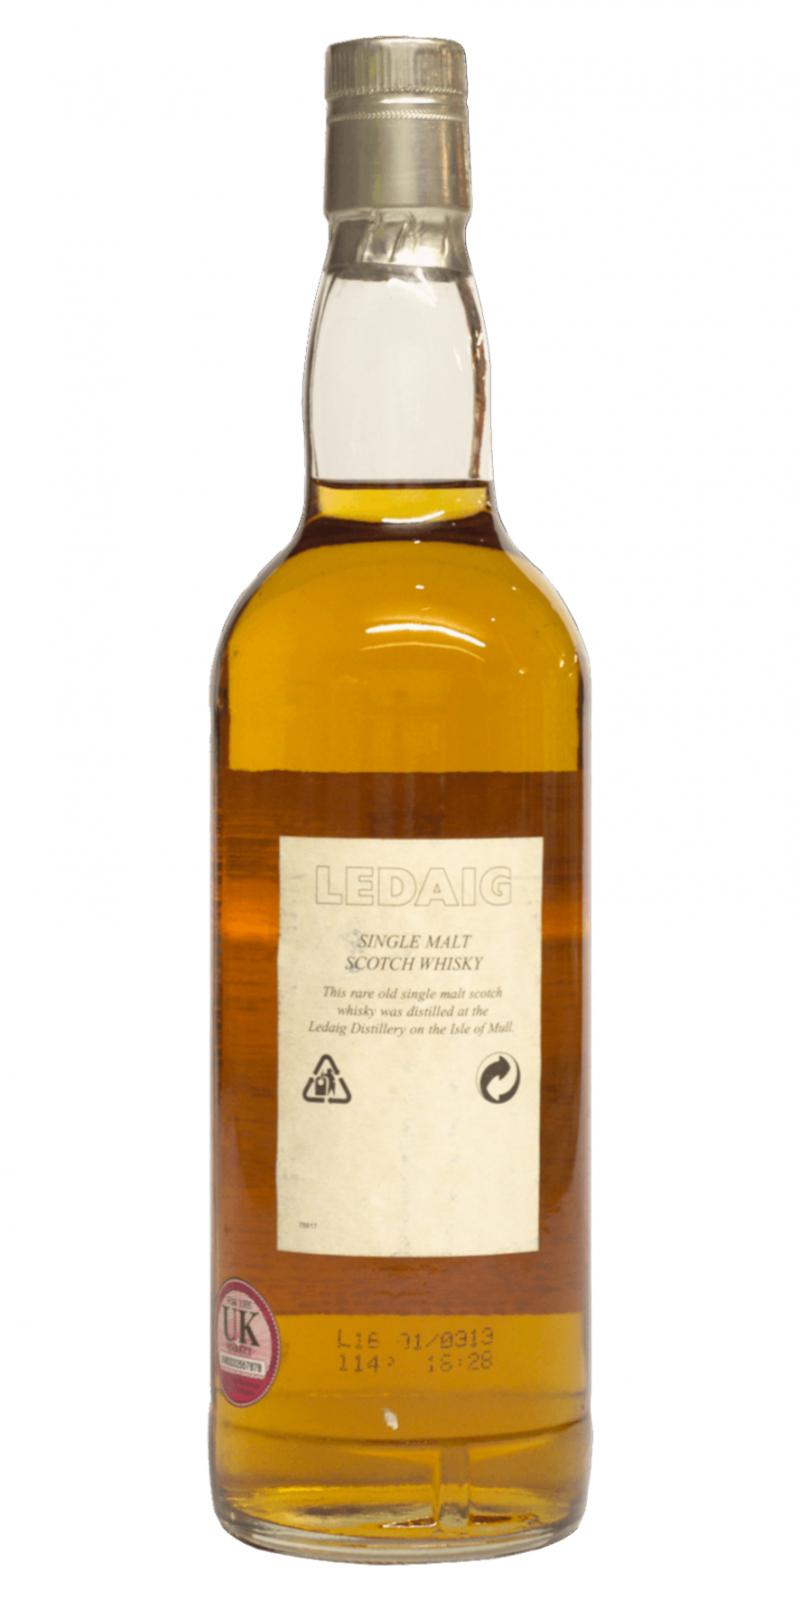 Ledaig 15-year-old